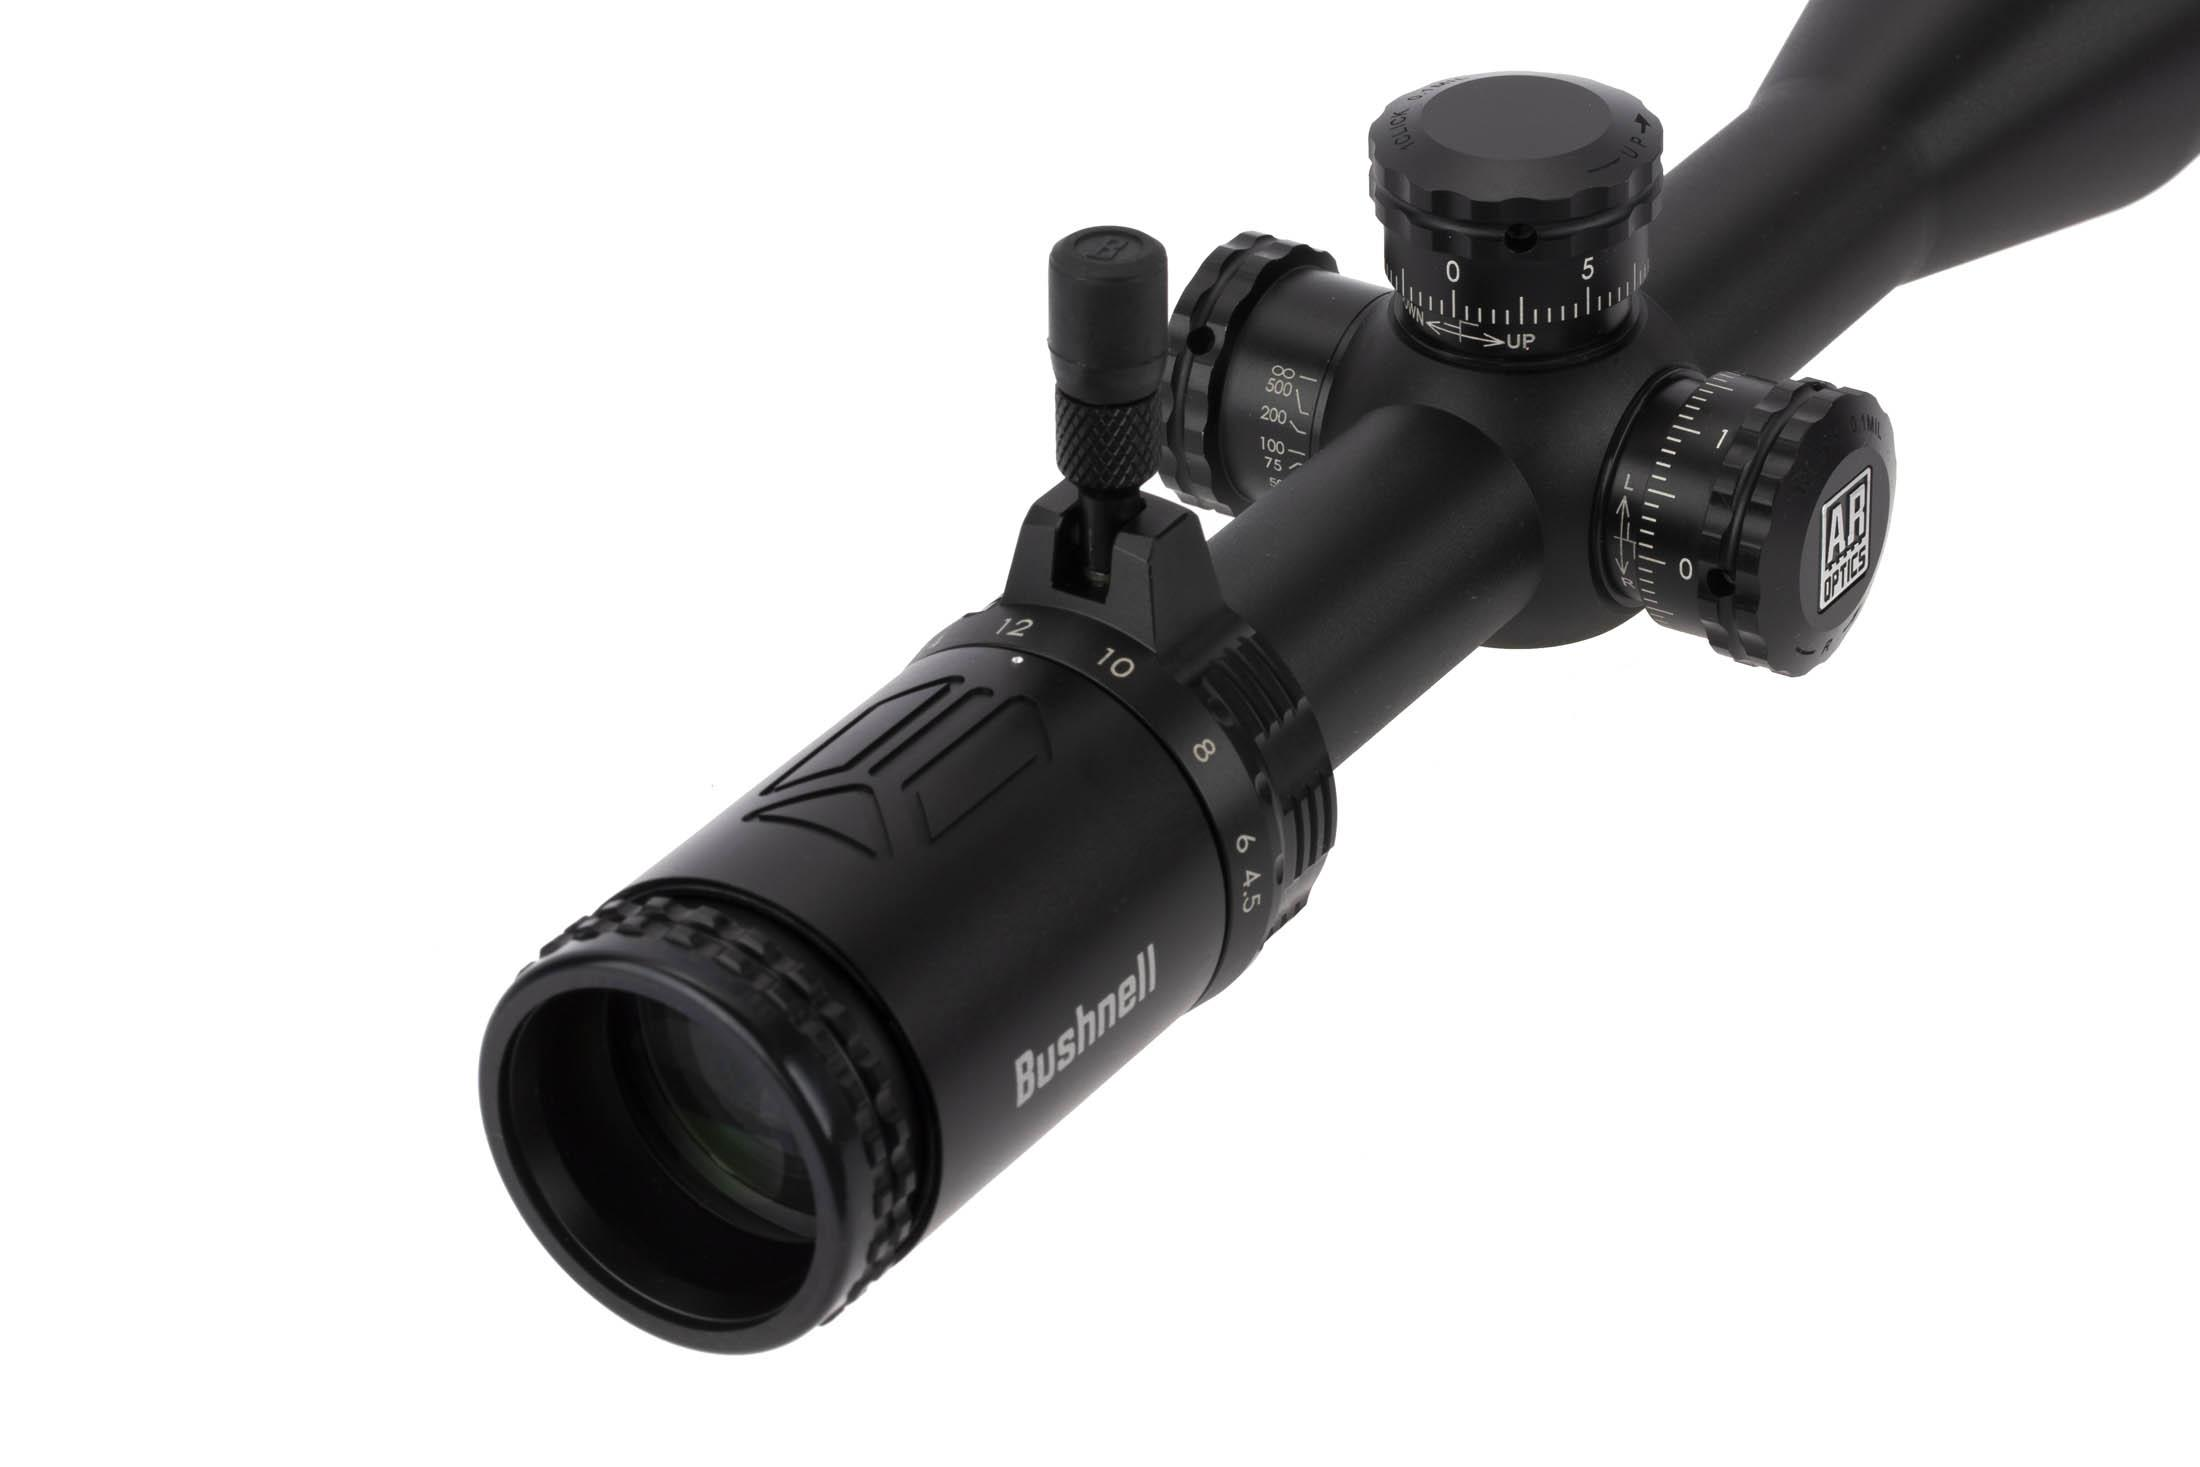 Bushenll 4.5-18x40mm AR Optics rifle scope features an adjustable diopter setting for perfectly crisp reticle and image